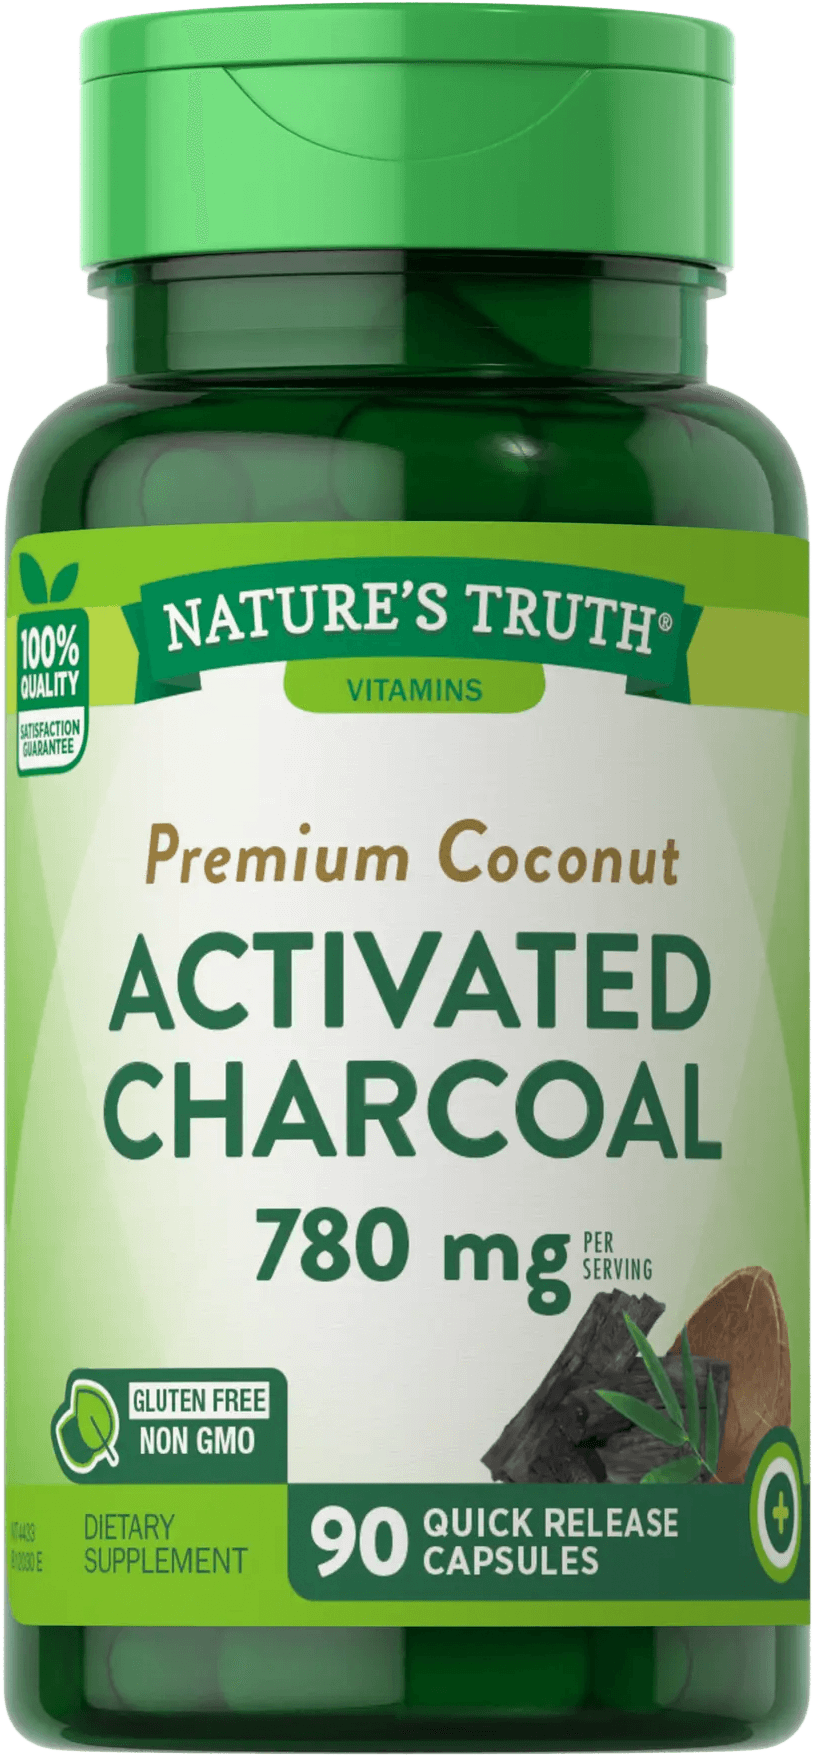 Activated Charcoal<br>780 mg